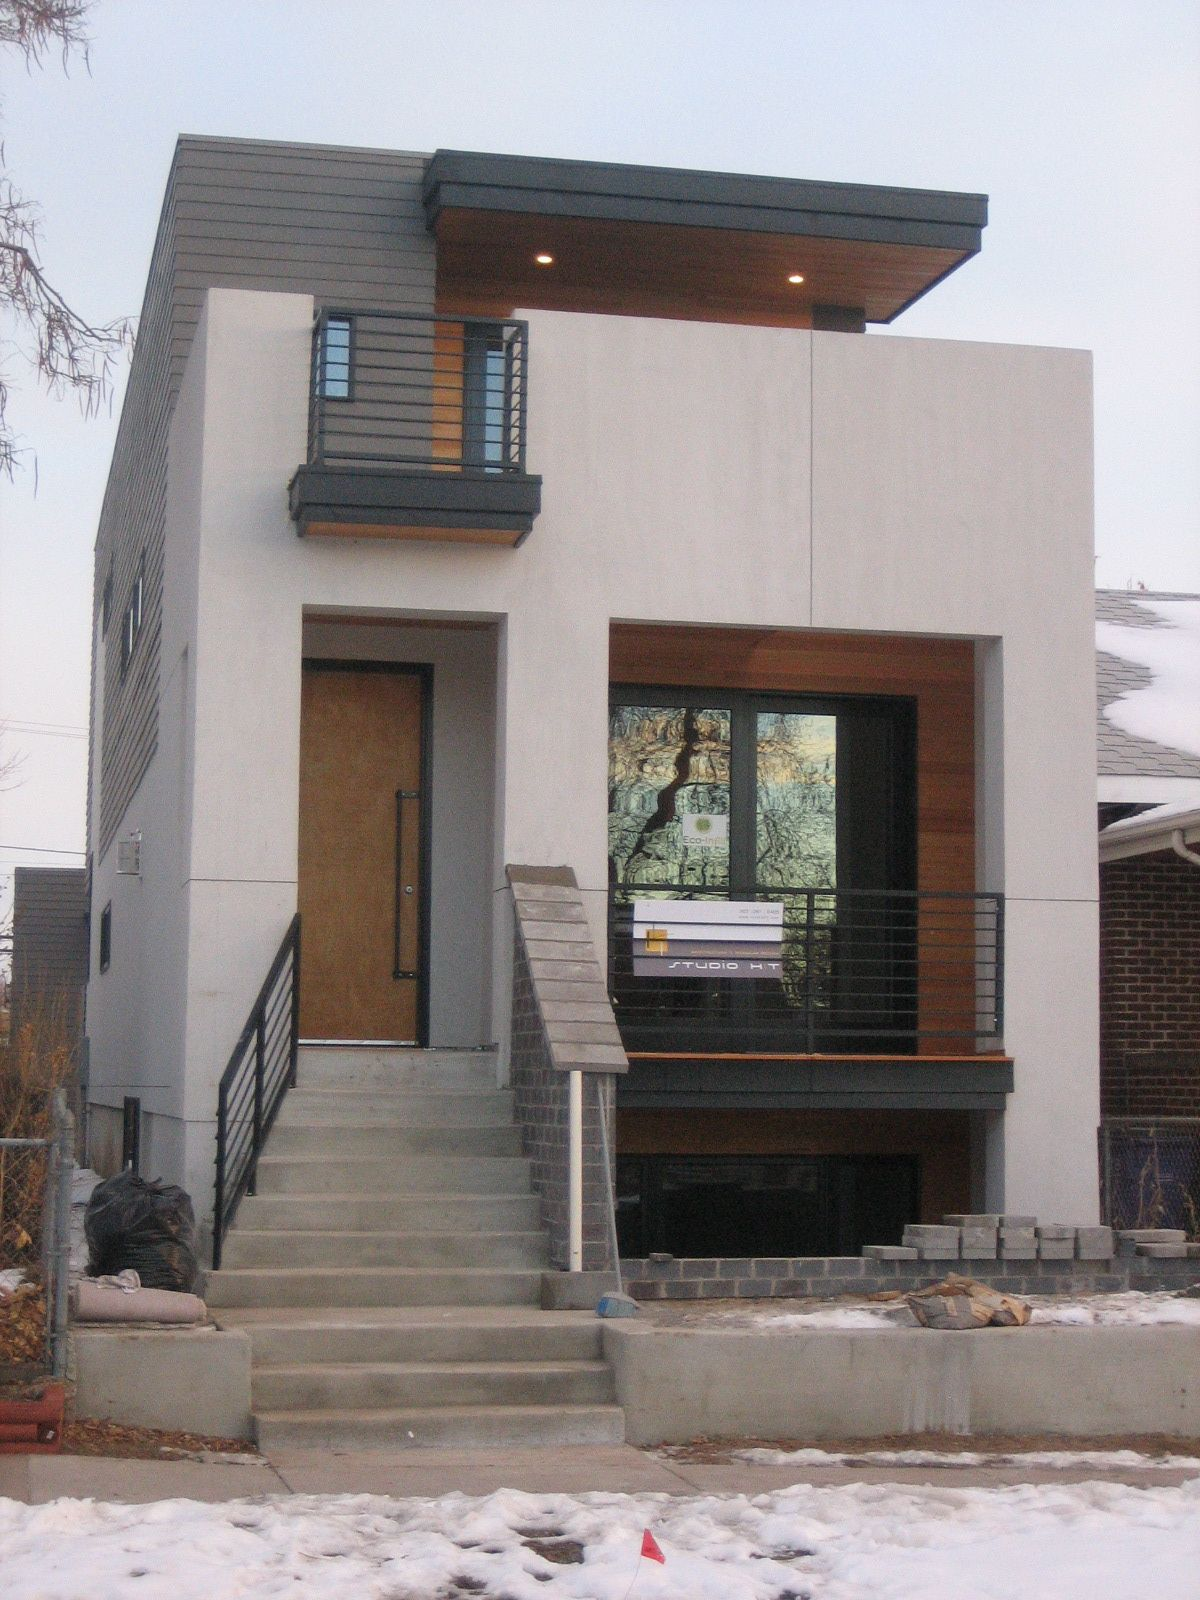 Architecture Inspiration. Admirable Small House Types, Plans And Exterior Ideas: Awesome Minima